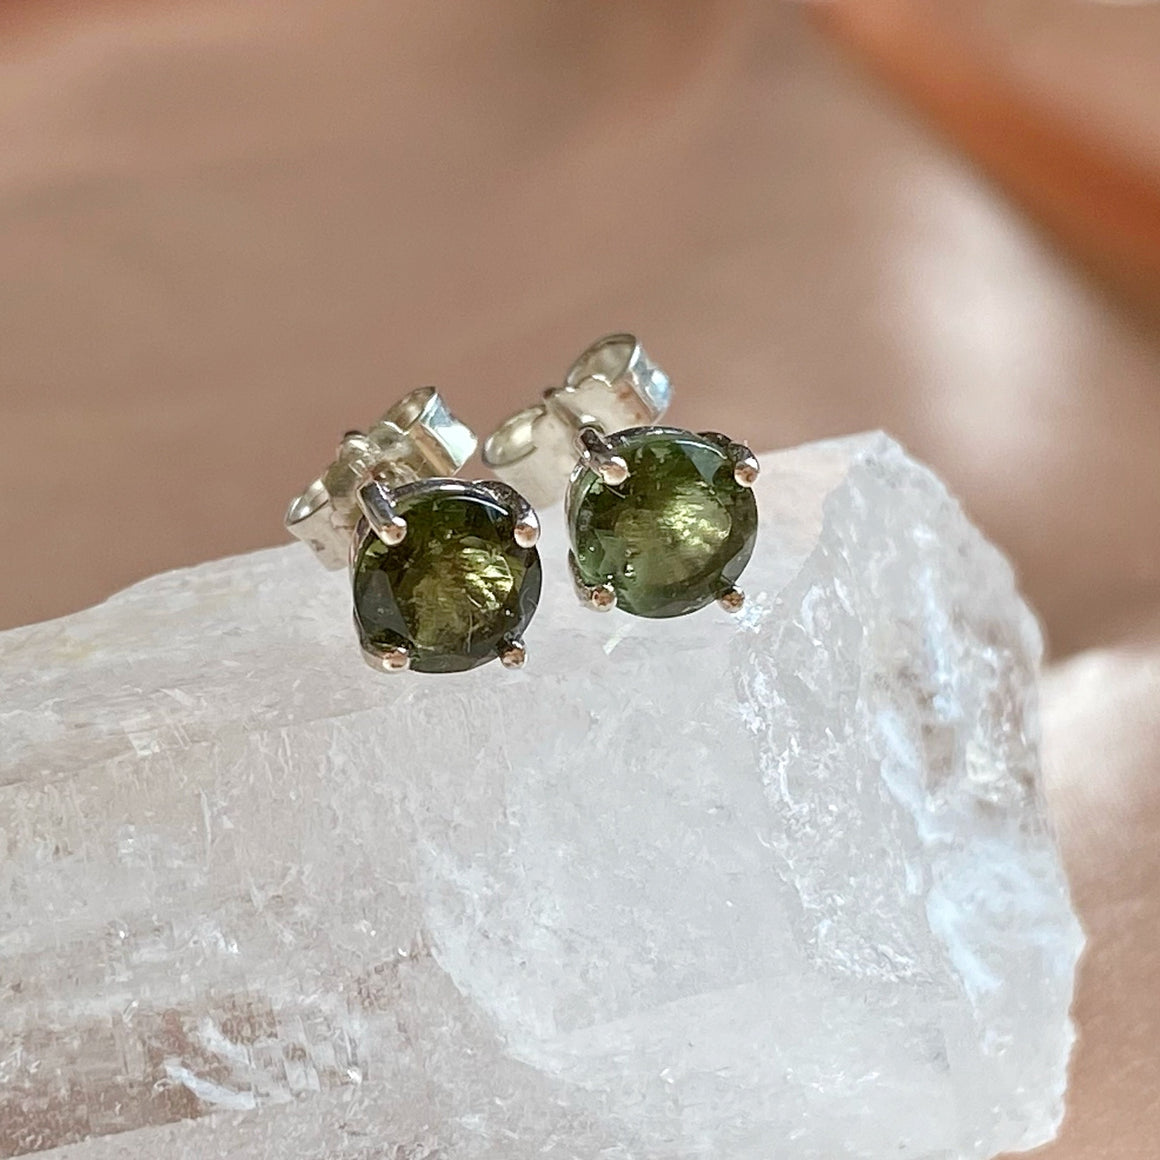 Faceted Moldavite (5mm) 925 Silver Ear Studs